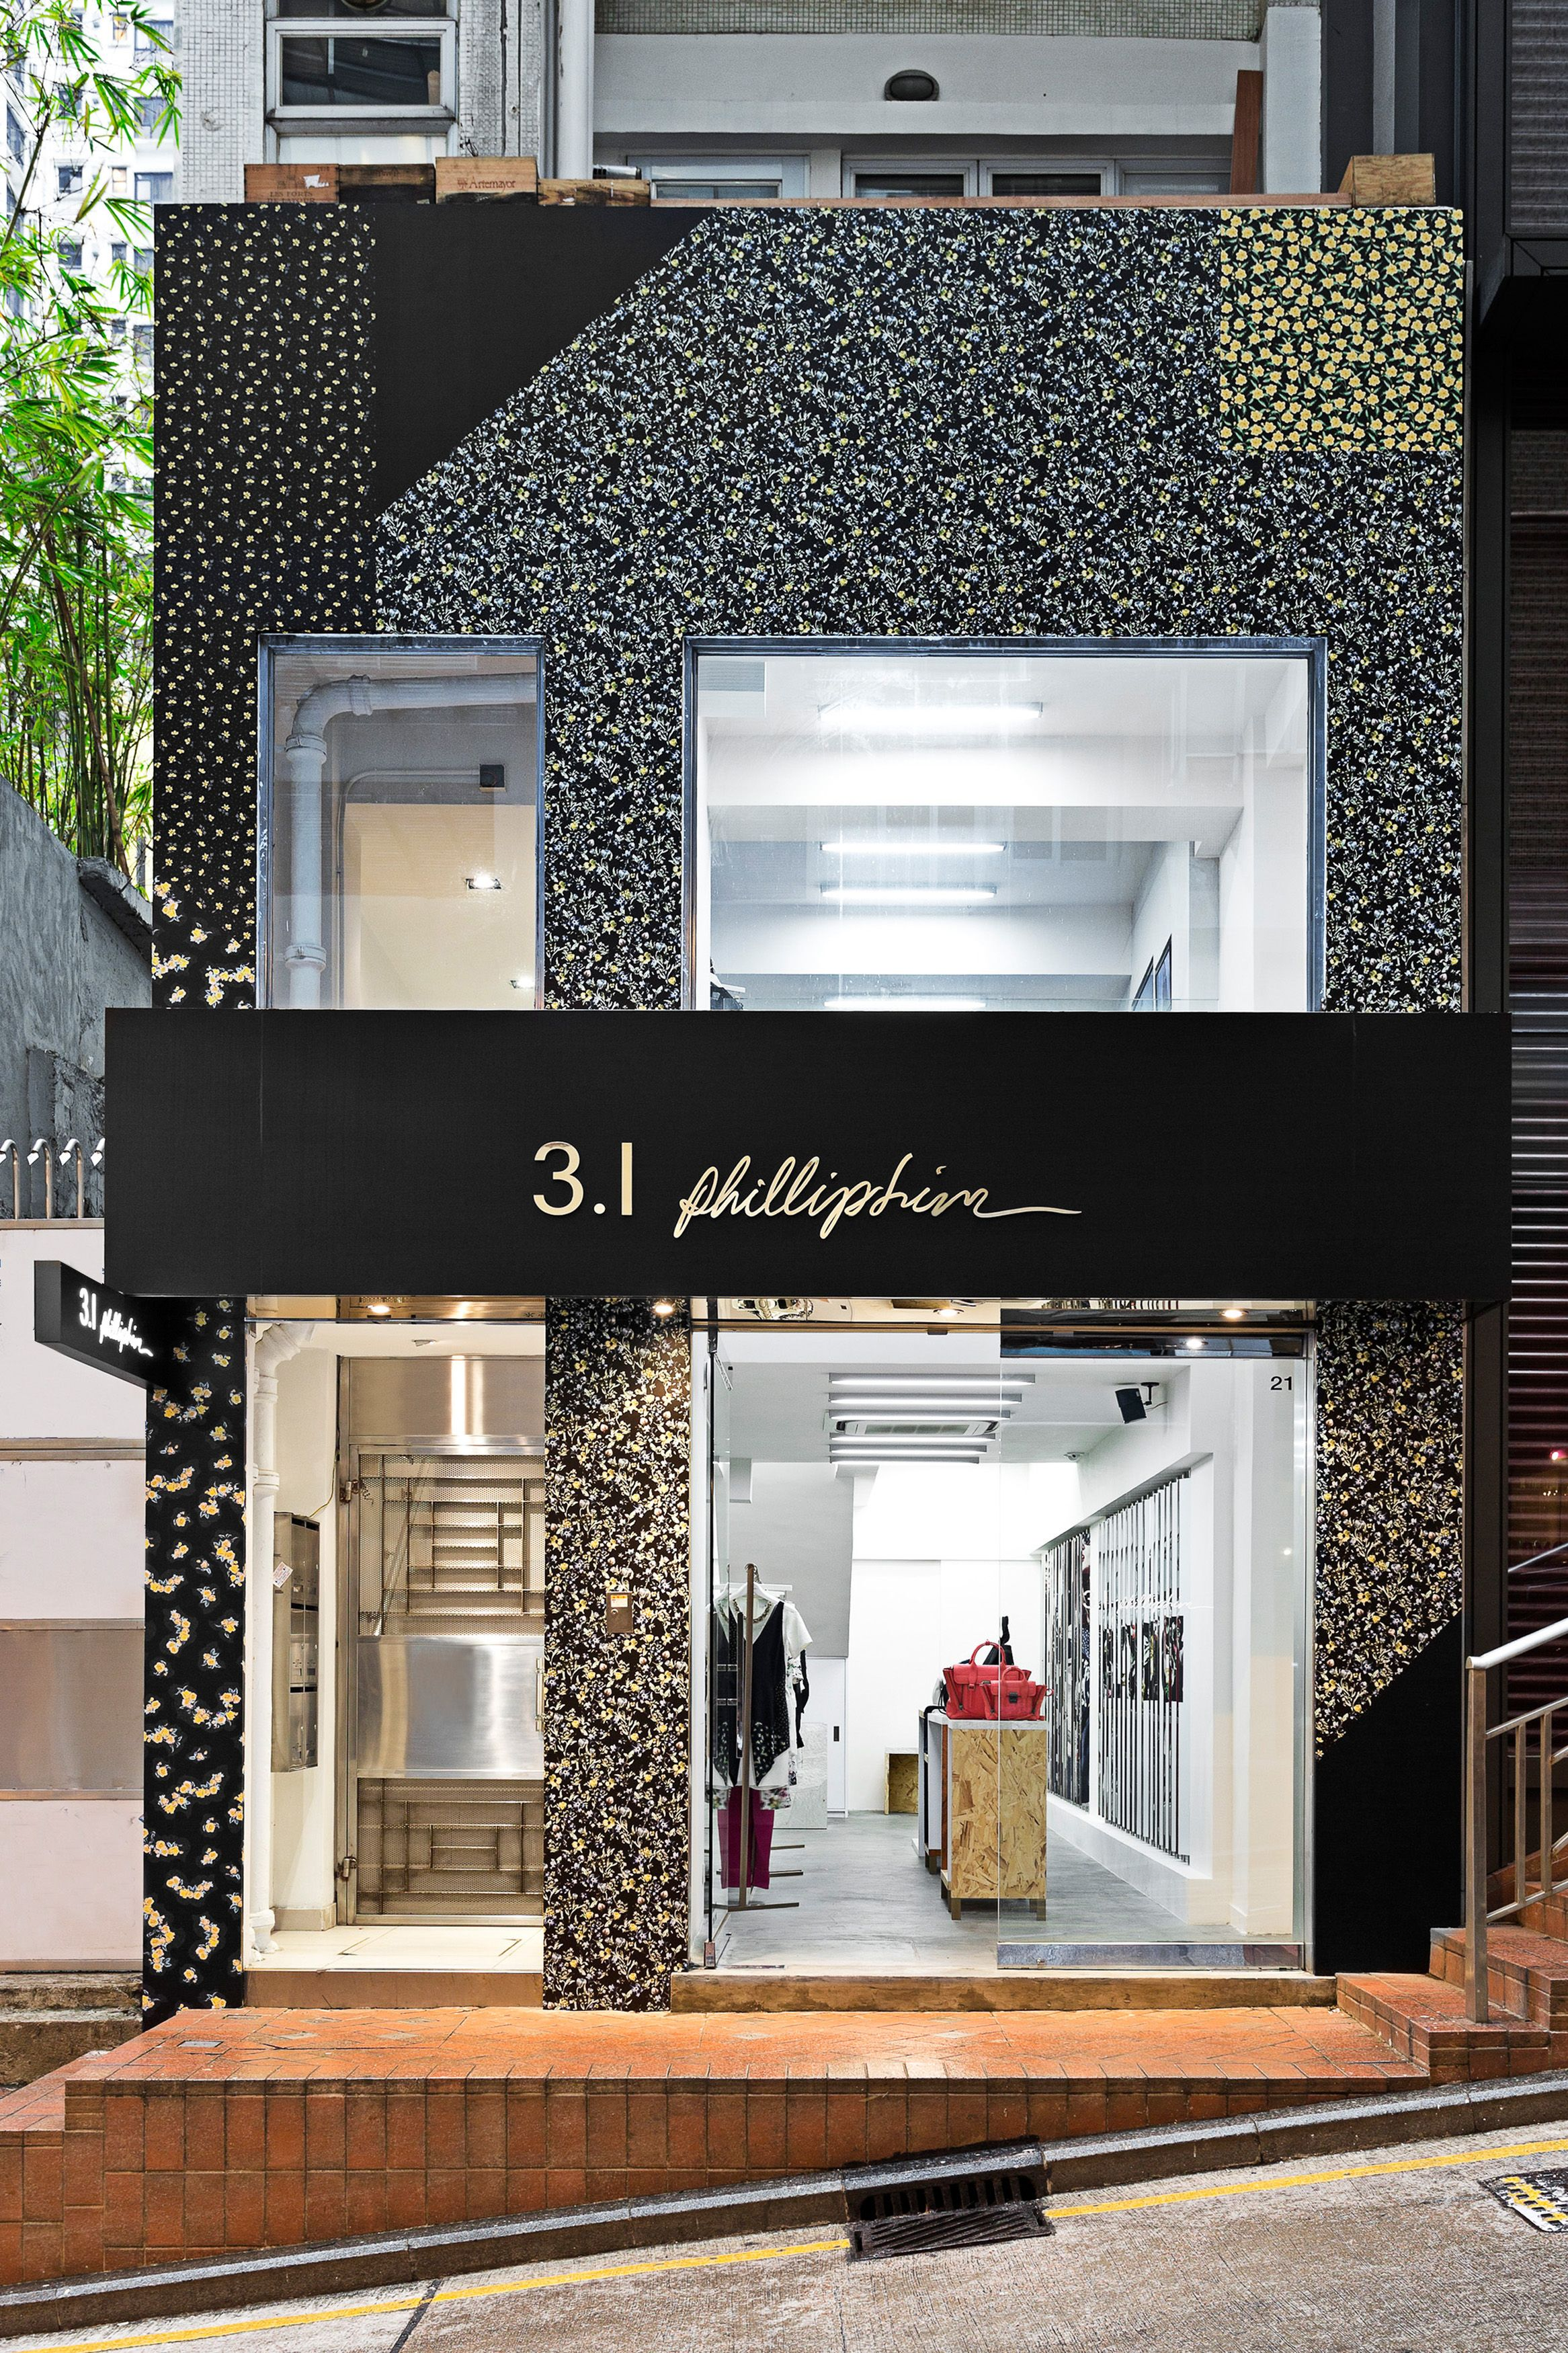 Store Facade Exterieur Wing Fung Pop Up Store Evolution To Women S Ss13 Tel 2520 6266